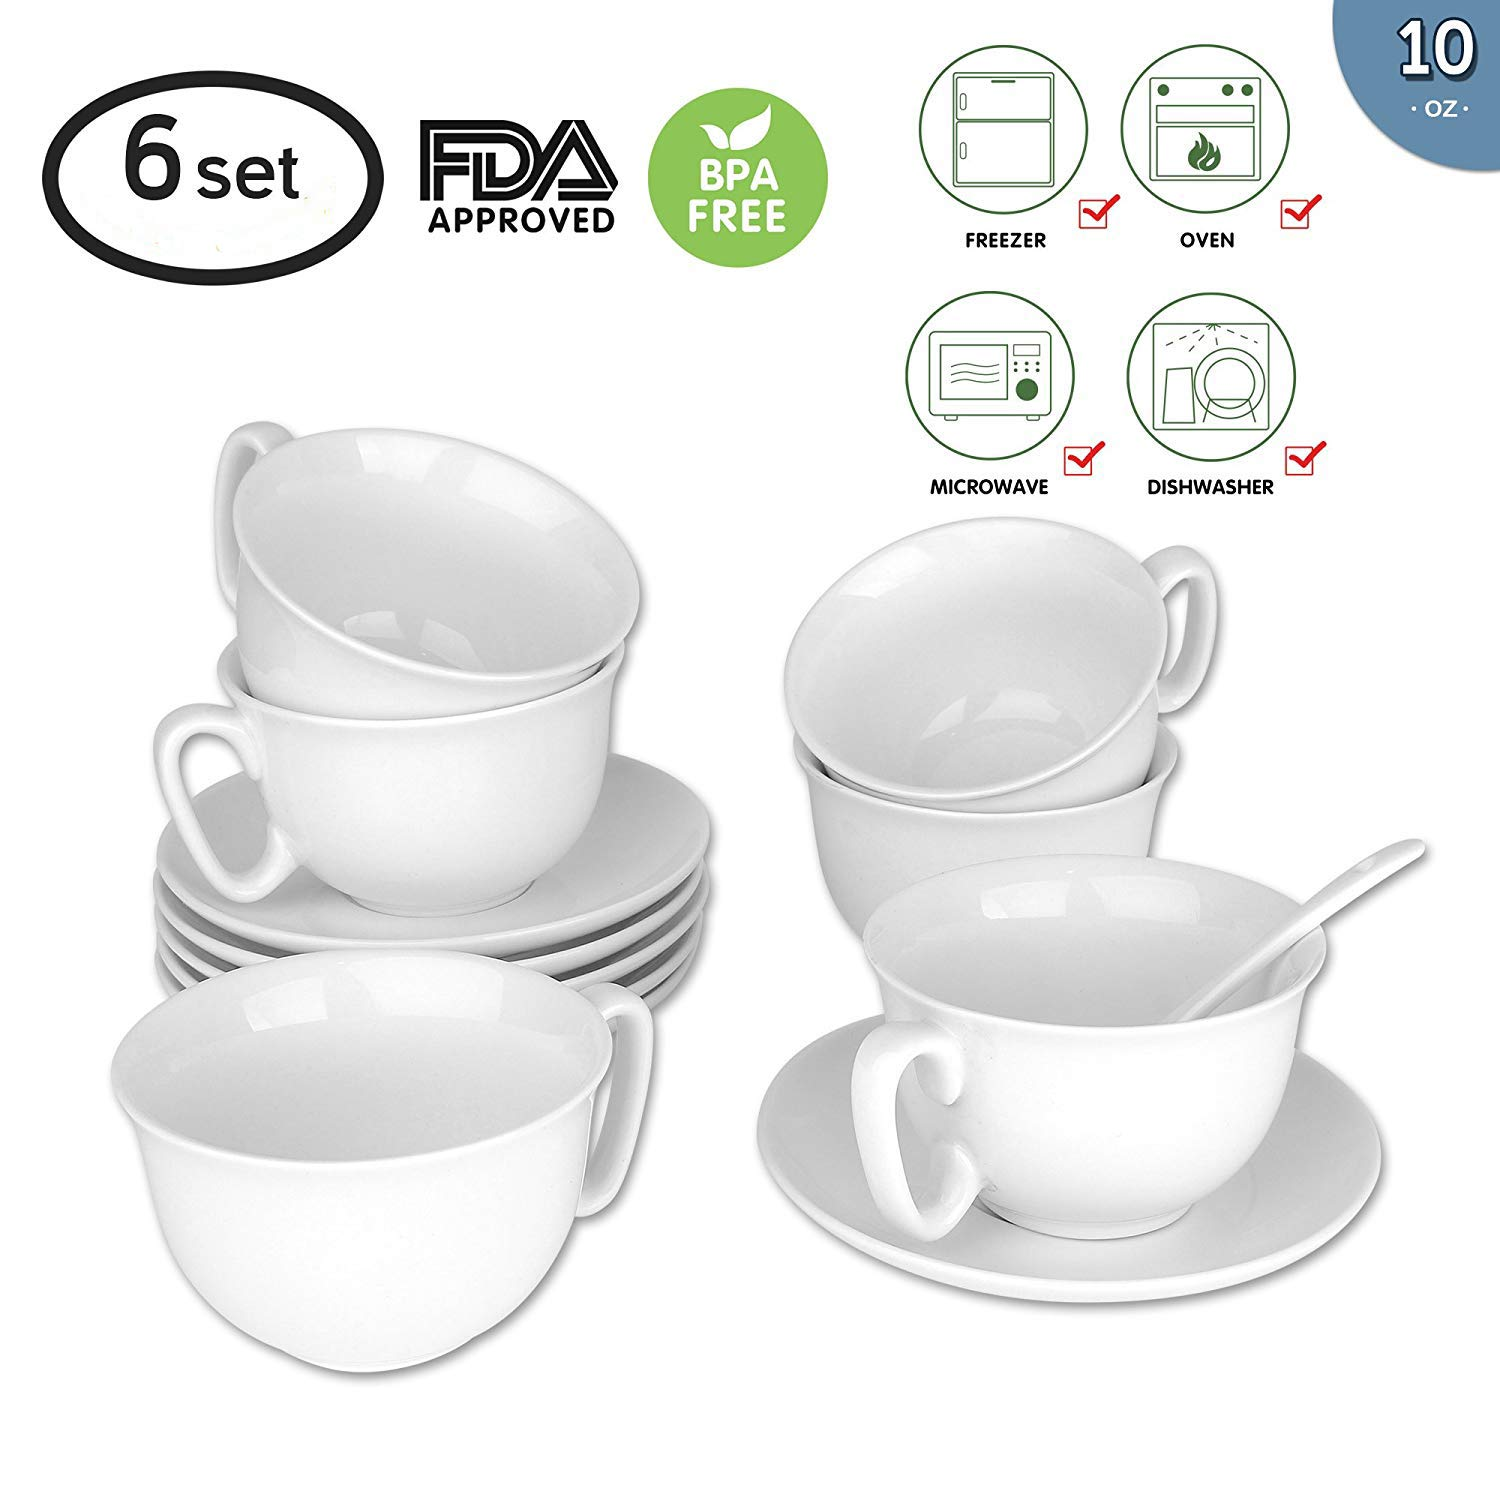 280ml/10 oz. Espresso Cups and Saucers Set with Handle Tea Cup(Include Ceramic spoon) and Saucer Fine Durable Porlecain White sets of 6